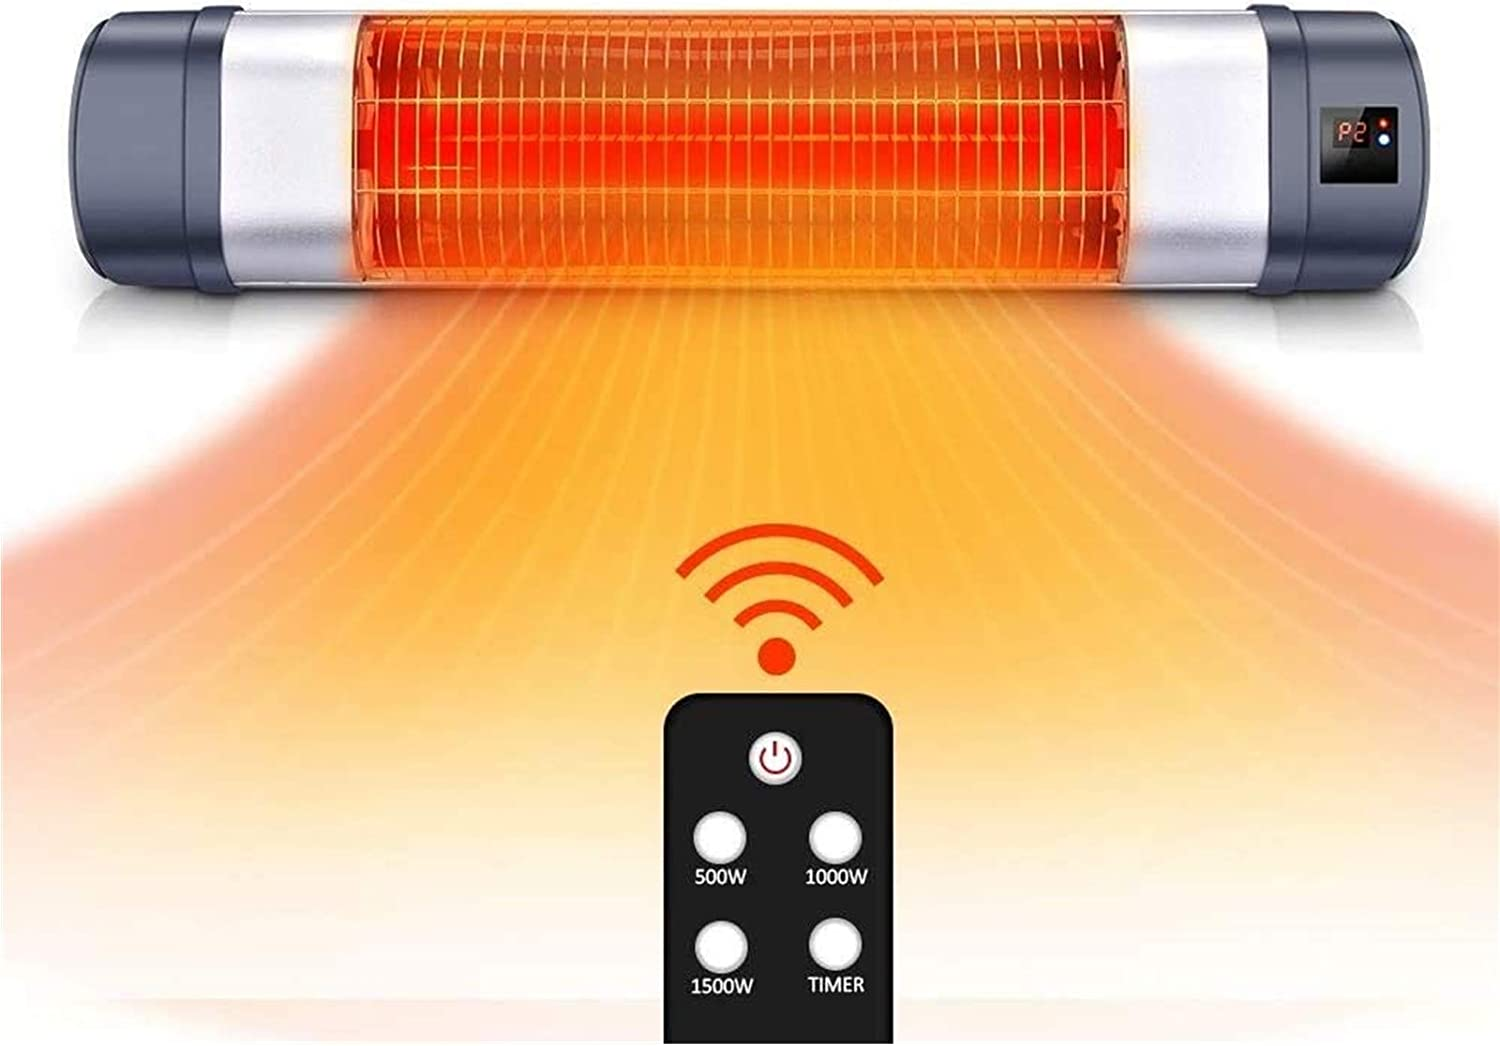 Overheat Protection 1500W Electric Patio Heater with 3 Power Settings TW15R Infrared Heater with Remote Control Super Quite Wall Mounted Space Heater Sunday Living Outdoor Heater in//Outdoor